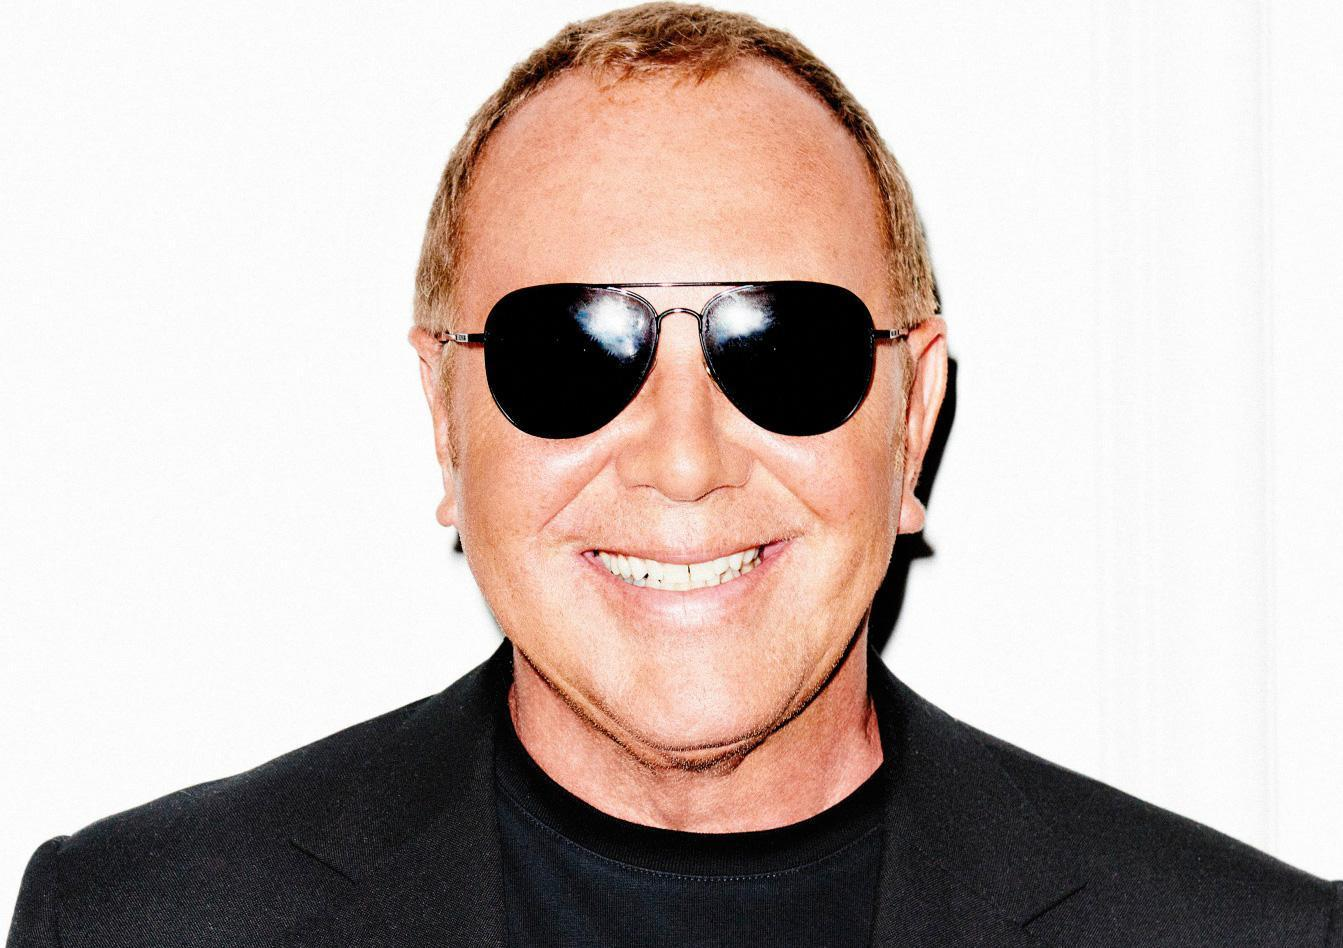 Michael Kors Is A Fashion Designer, After All